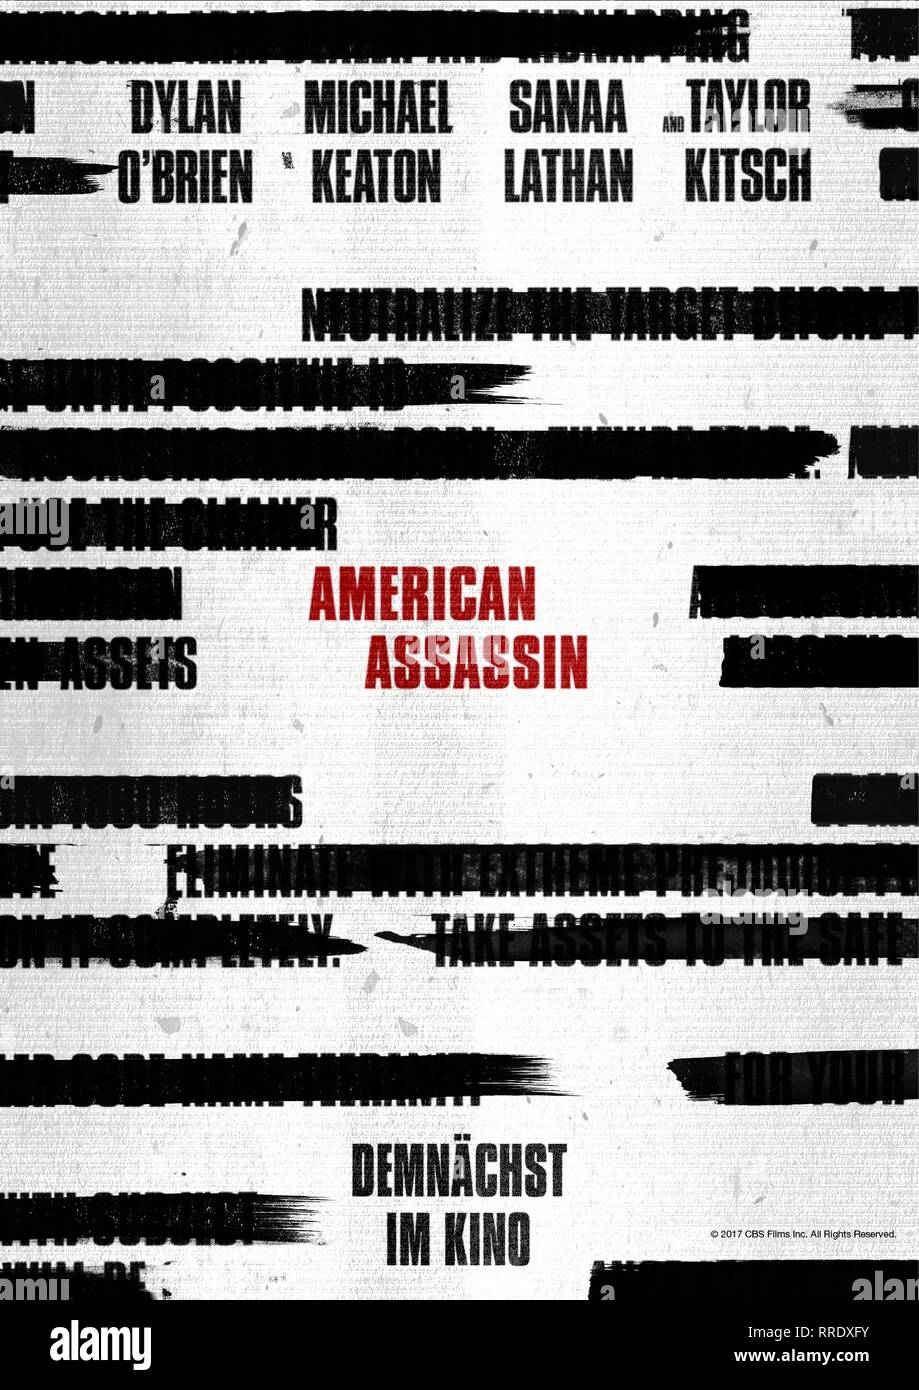 AMERICAN ASSASSIN, MOVIE POSTER, 2017 - Stock Image